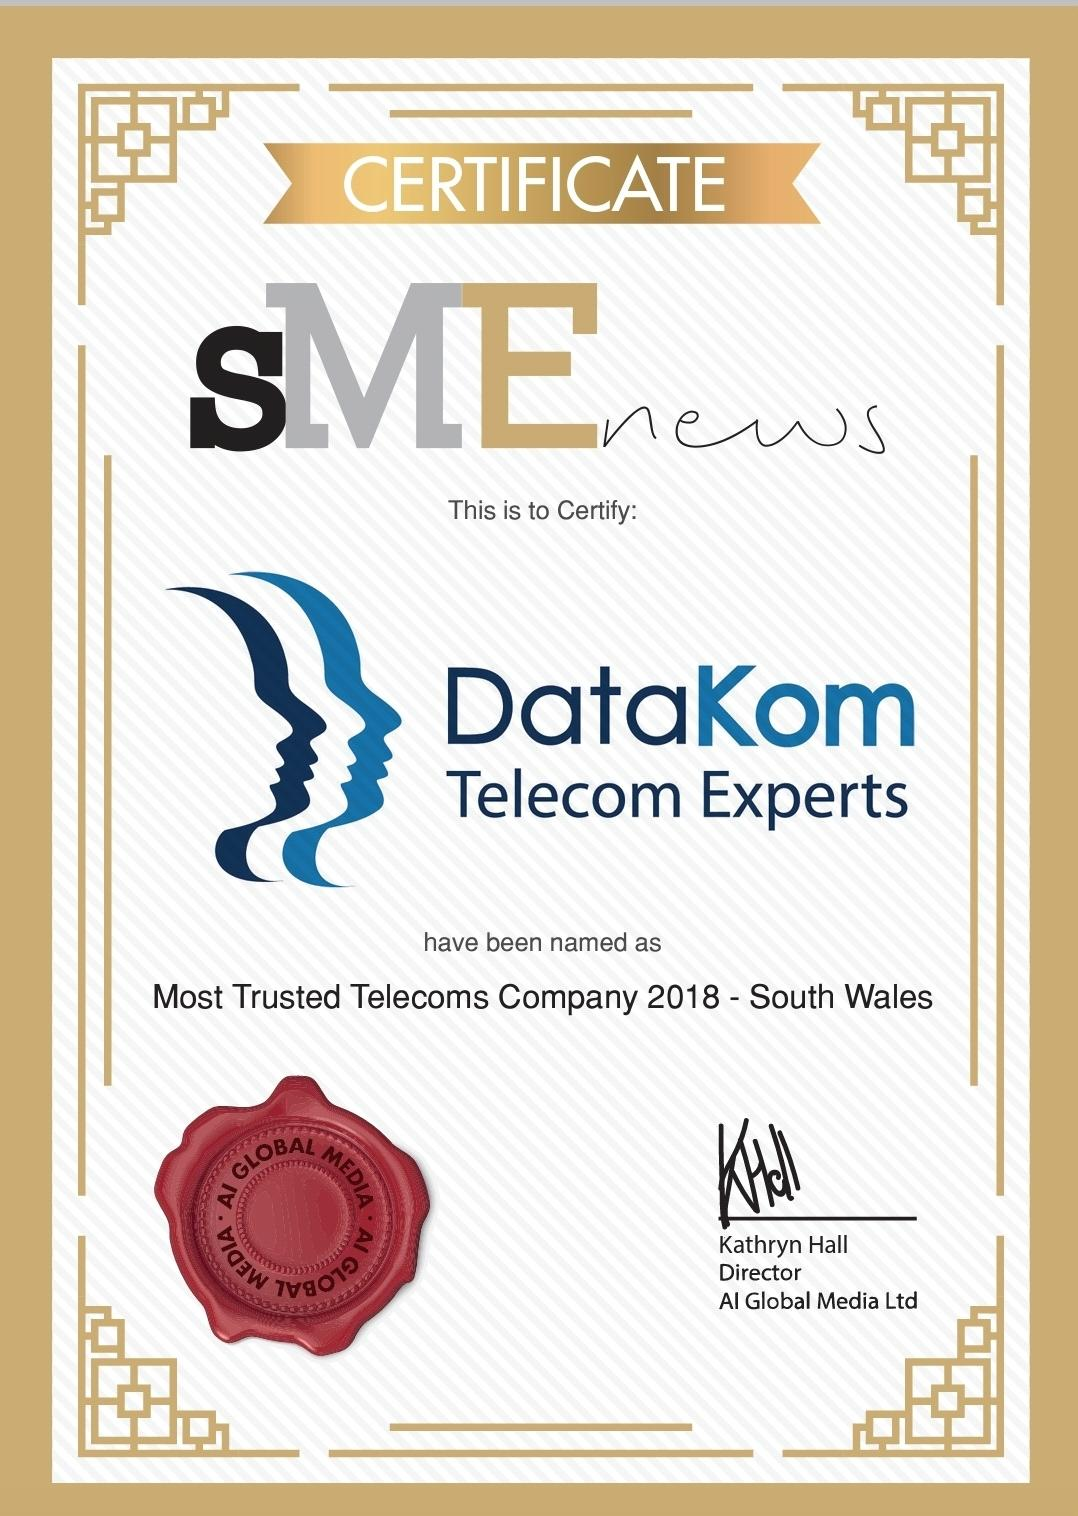 DatKom WiN Most Trusted Telecoms Company 2018 - South Wales Award